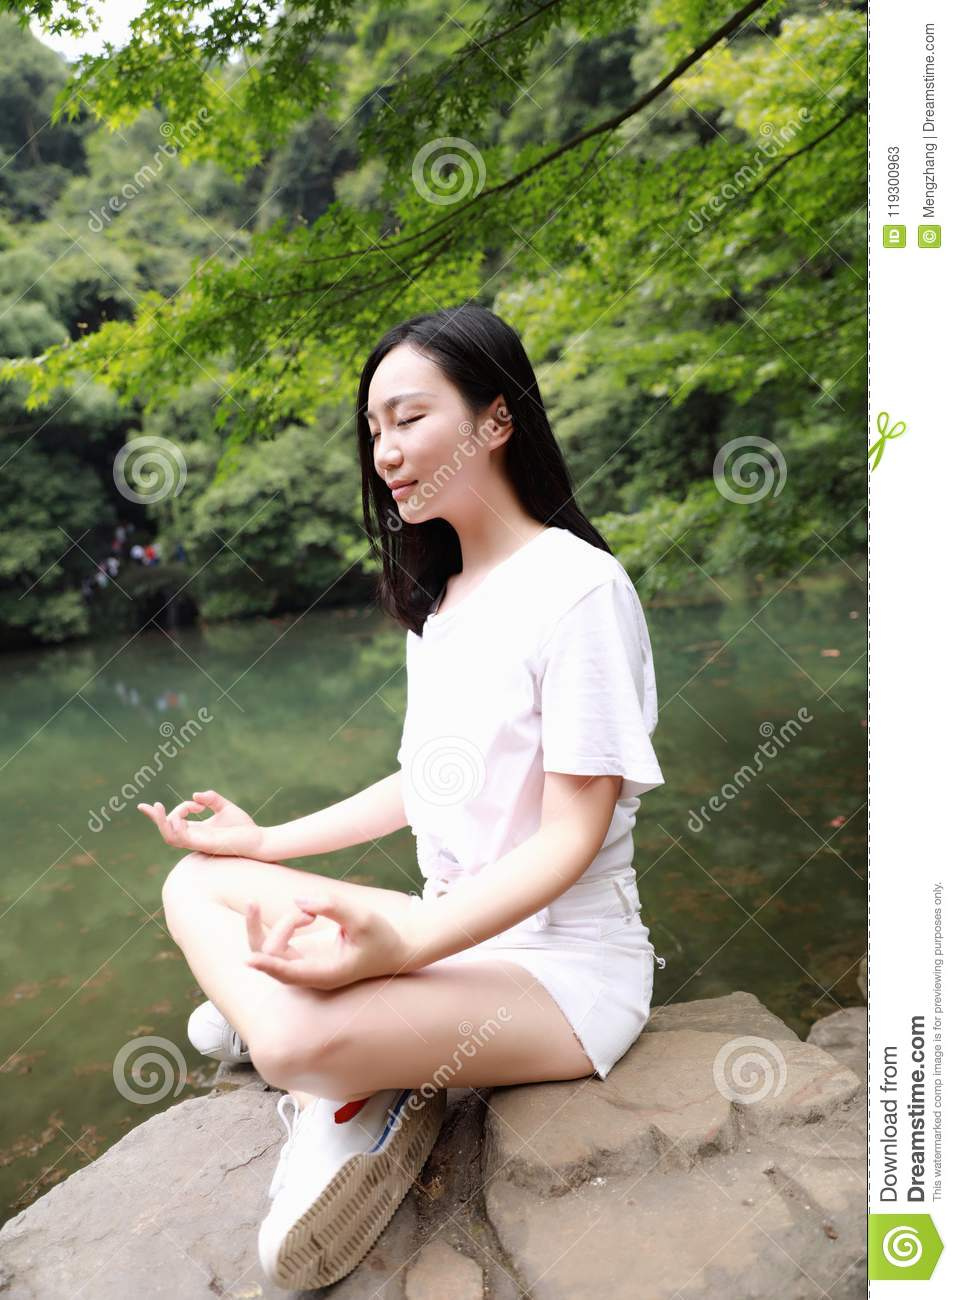 A Happy Free Smile Peace Balance Meditation Beauty Girl Asian